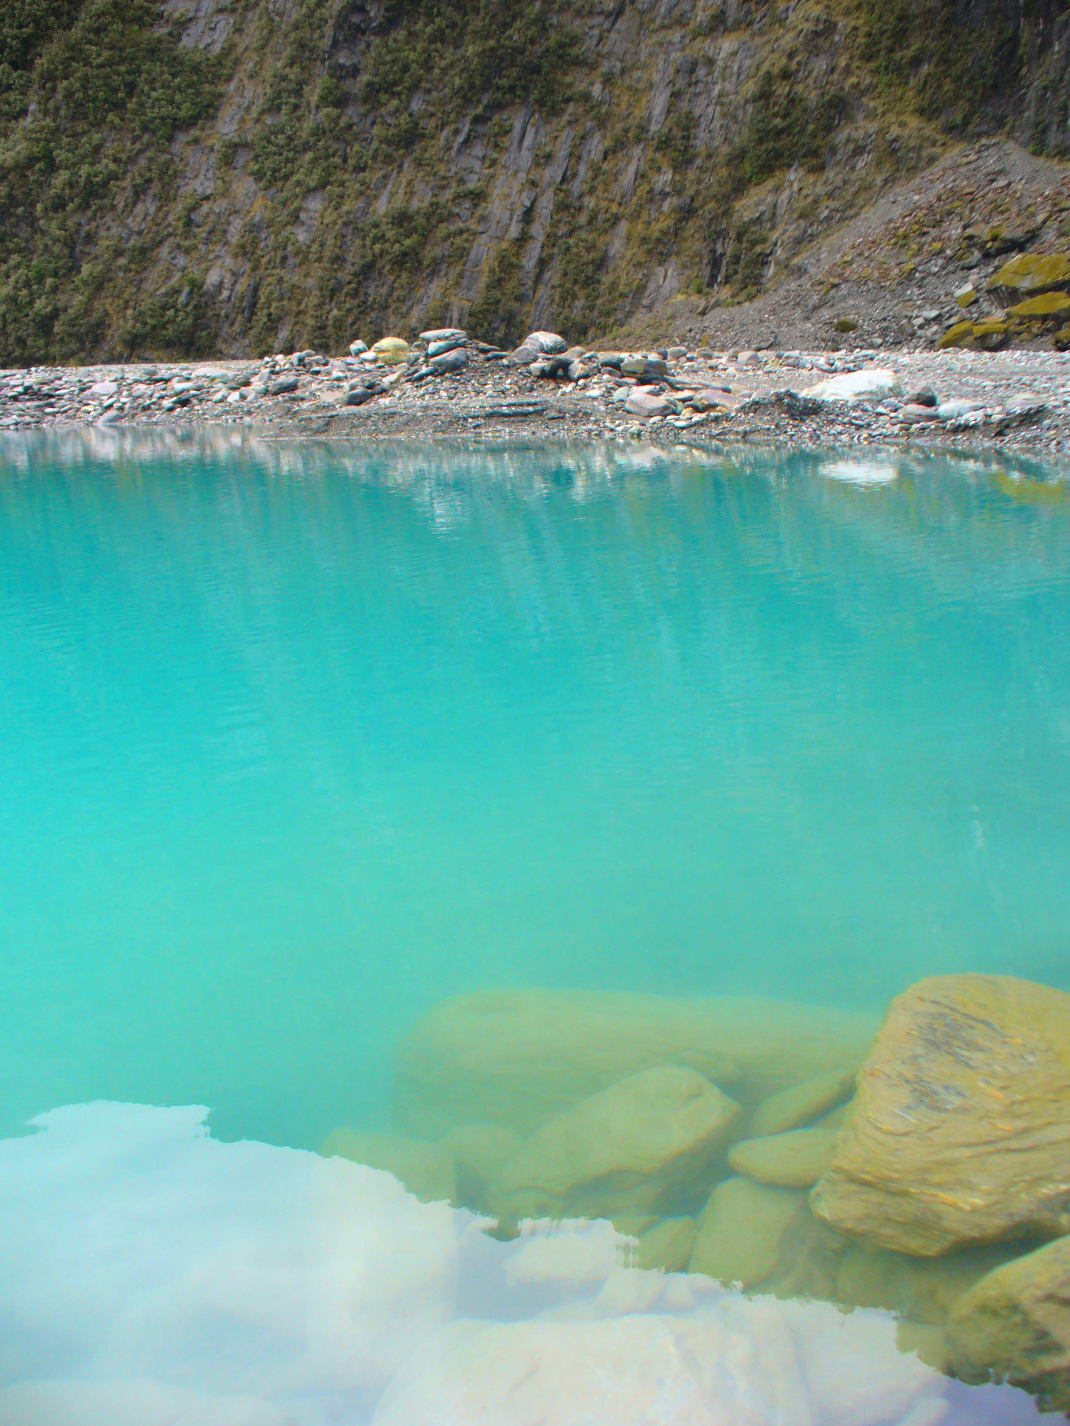 Icy pond at Fox Glacier, New Zealand Amanda Levick 2010